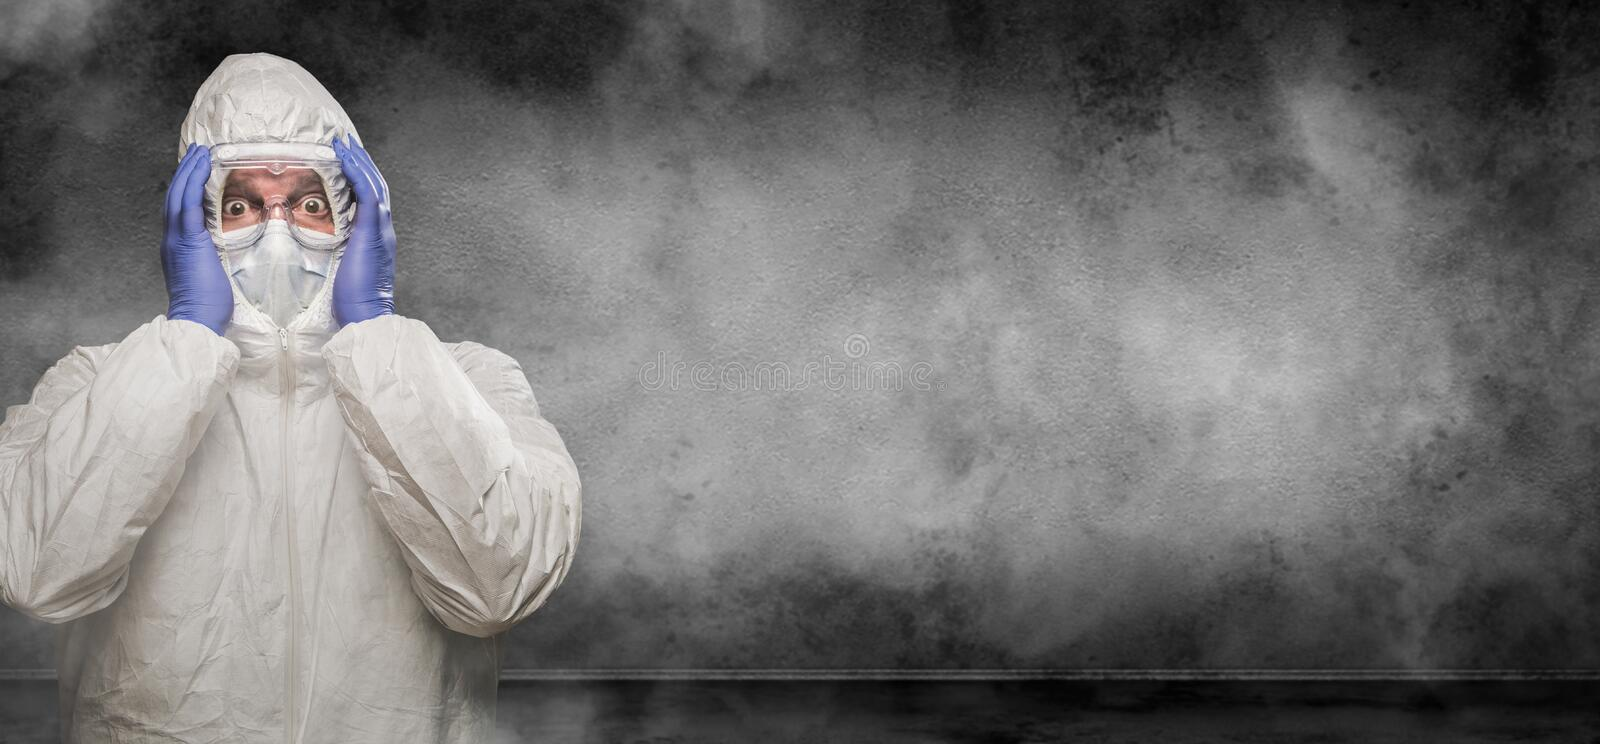 Man Wearing Hazmat Suit and Goggles In Smokey Room Banner with Copy Space royalty free stock photo